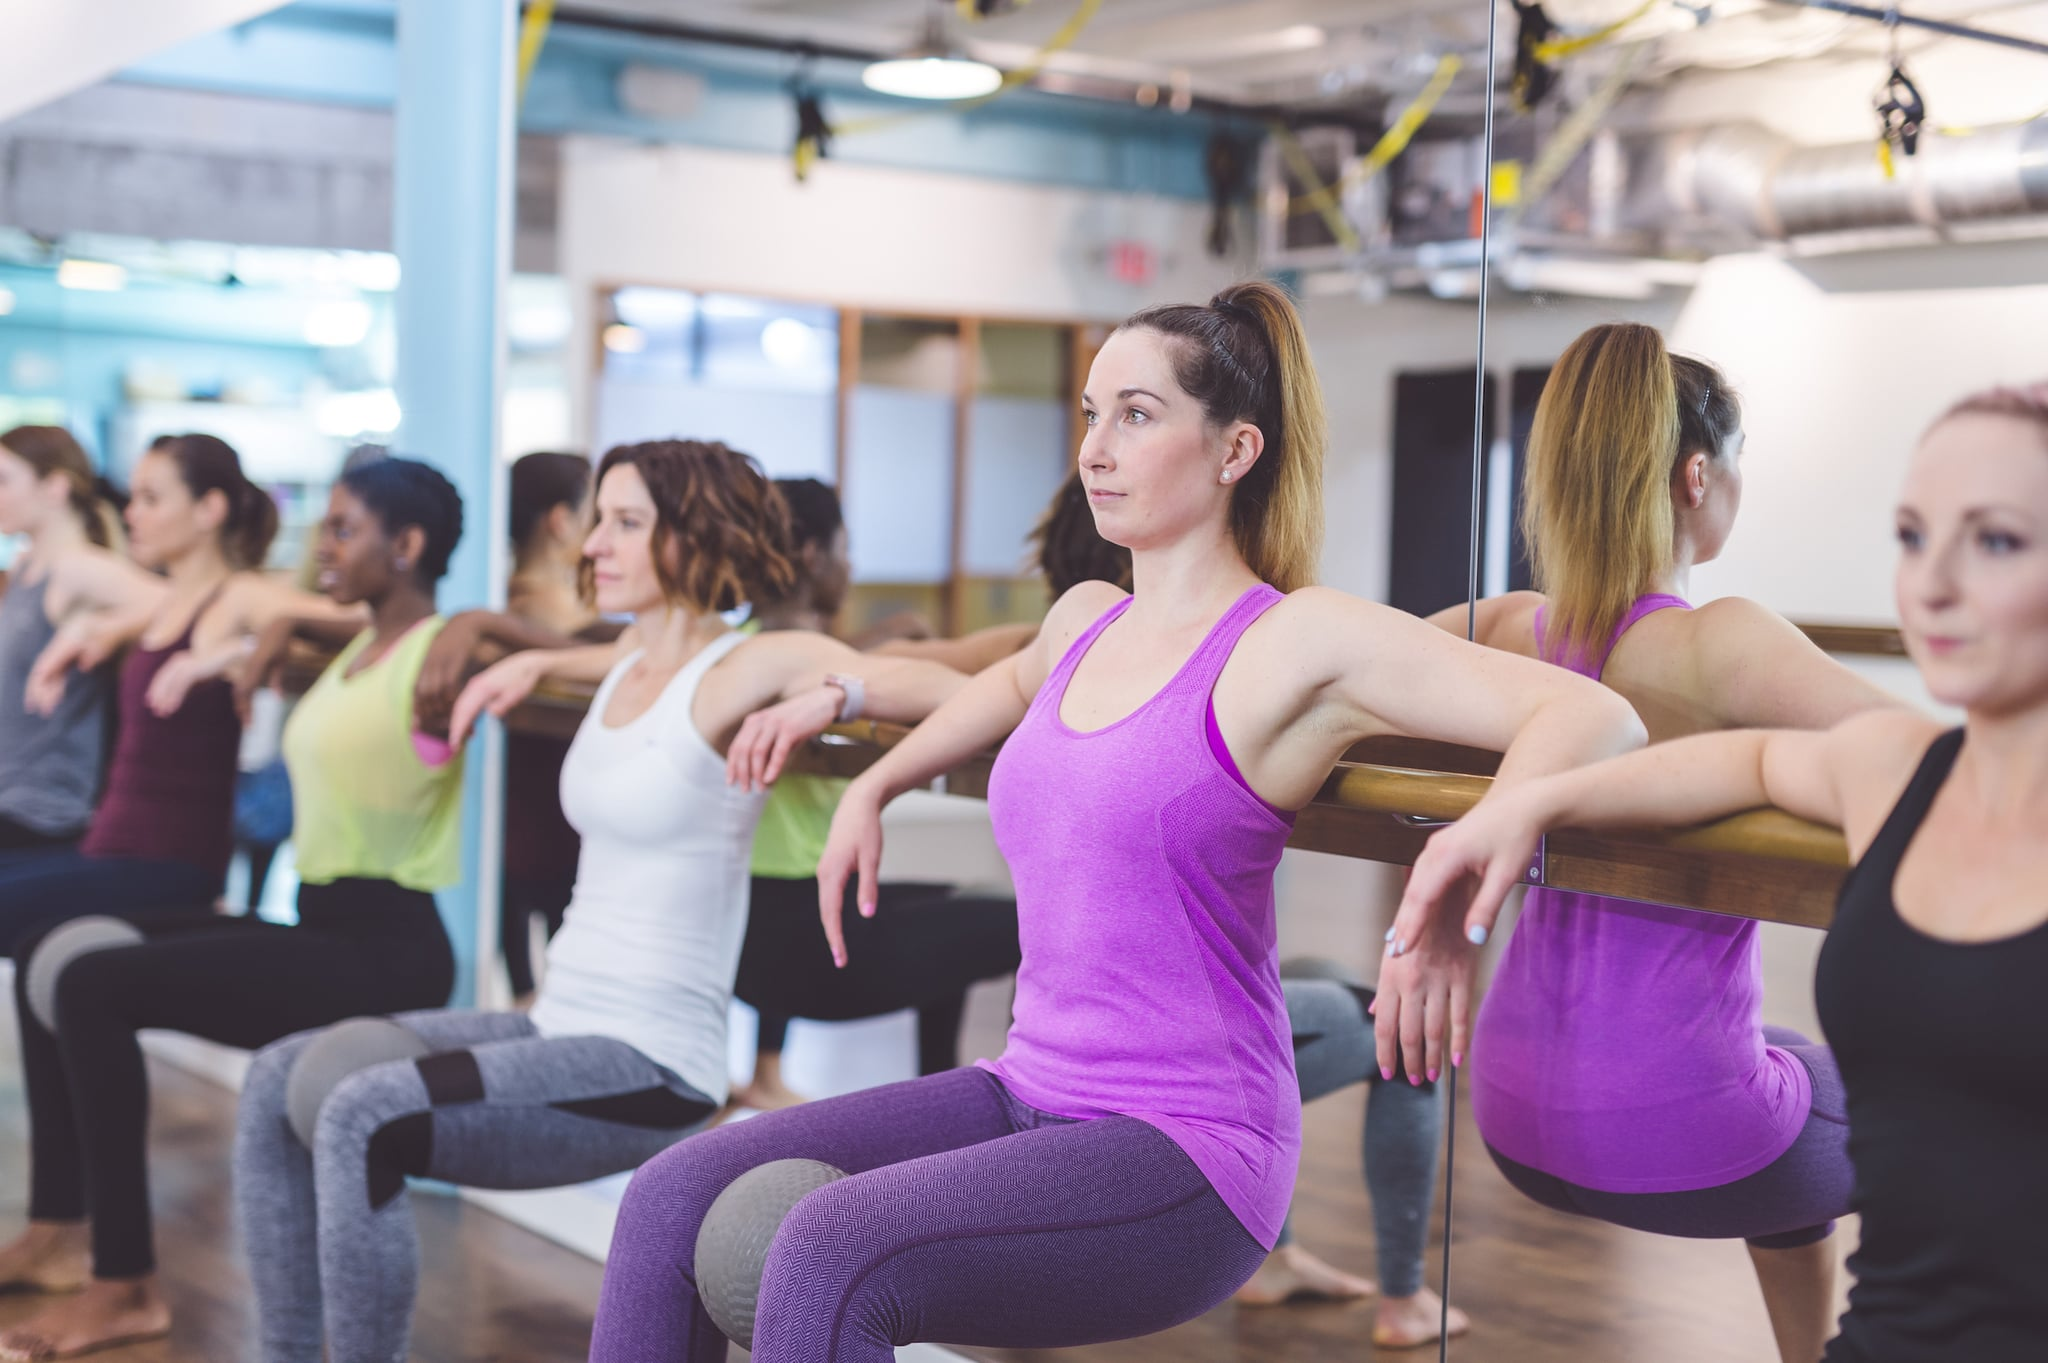 Multiethnic group of young women do barre & TRX suspension workout together at modern gym suspension workout together at modern gym